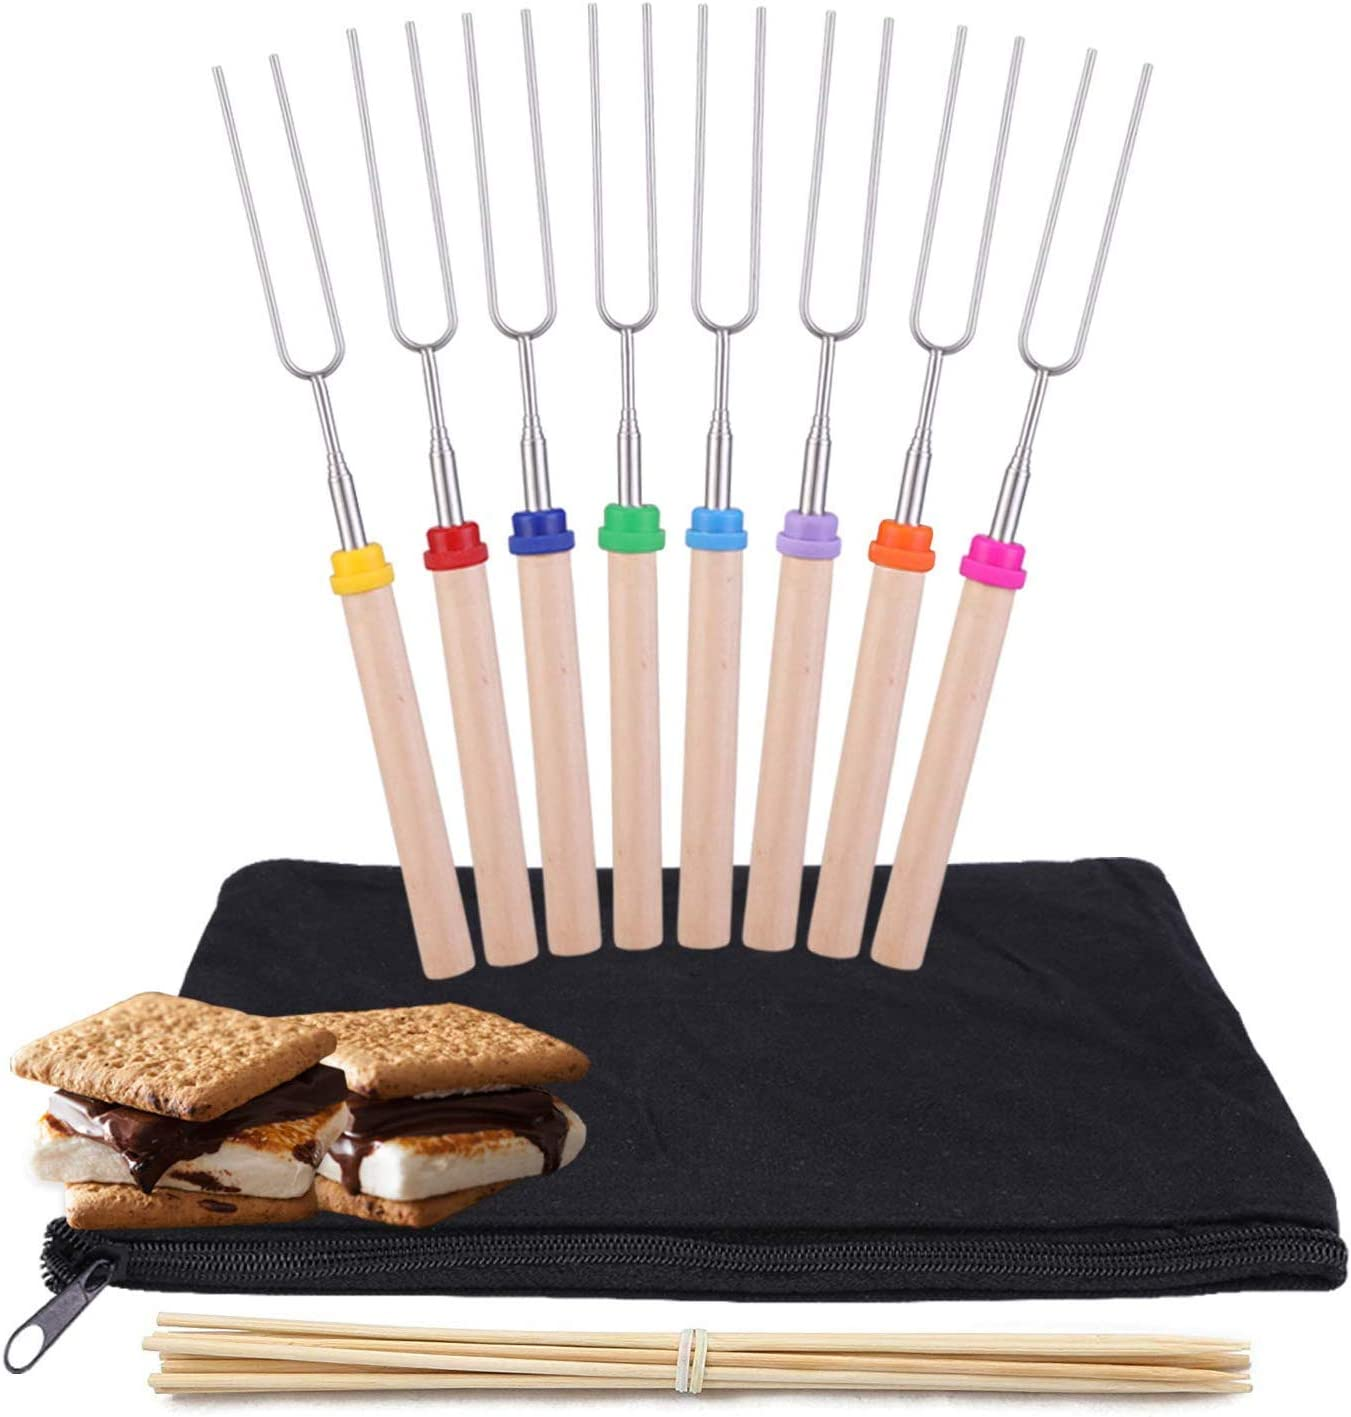 Y-ME Telescoping Marshmallow Roasting Sticks Set of 8 Hot Dog Forks&Smores Skewers Camping Cookware 32 Inch Campfire Roasting Sticks for Kids